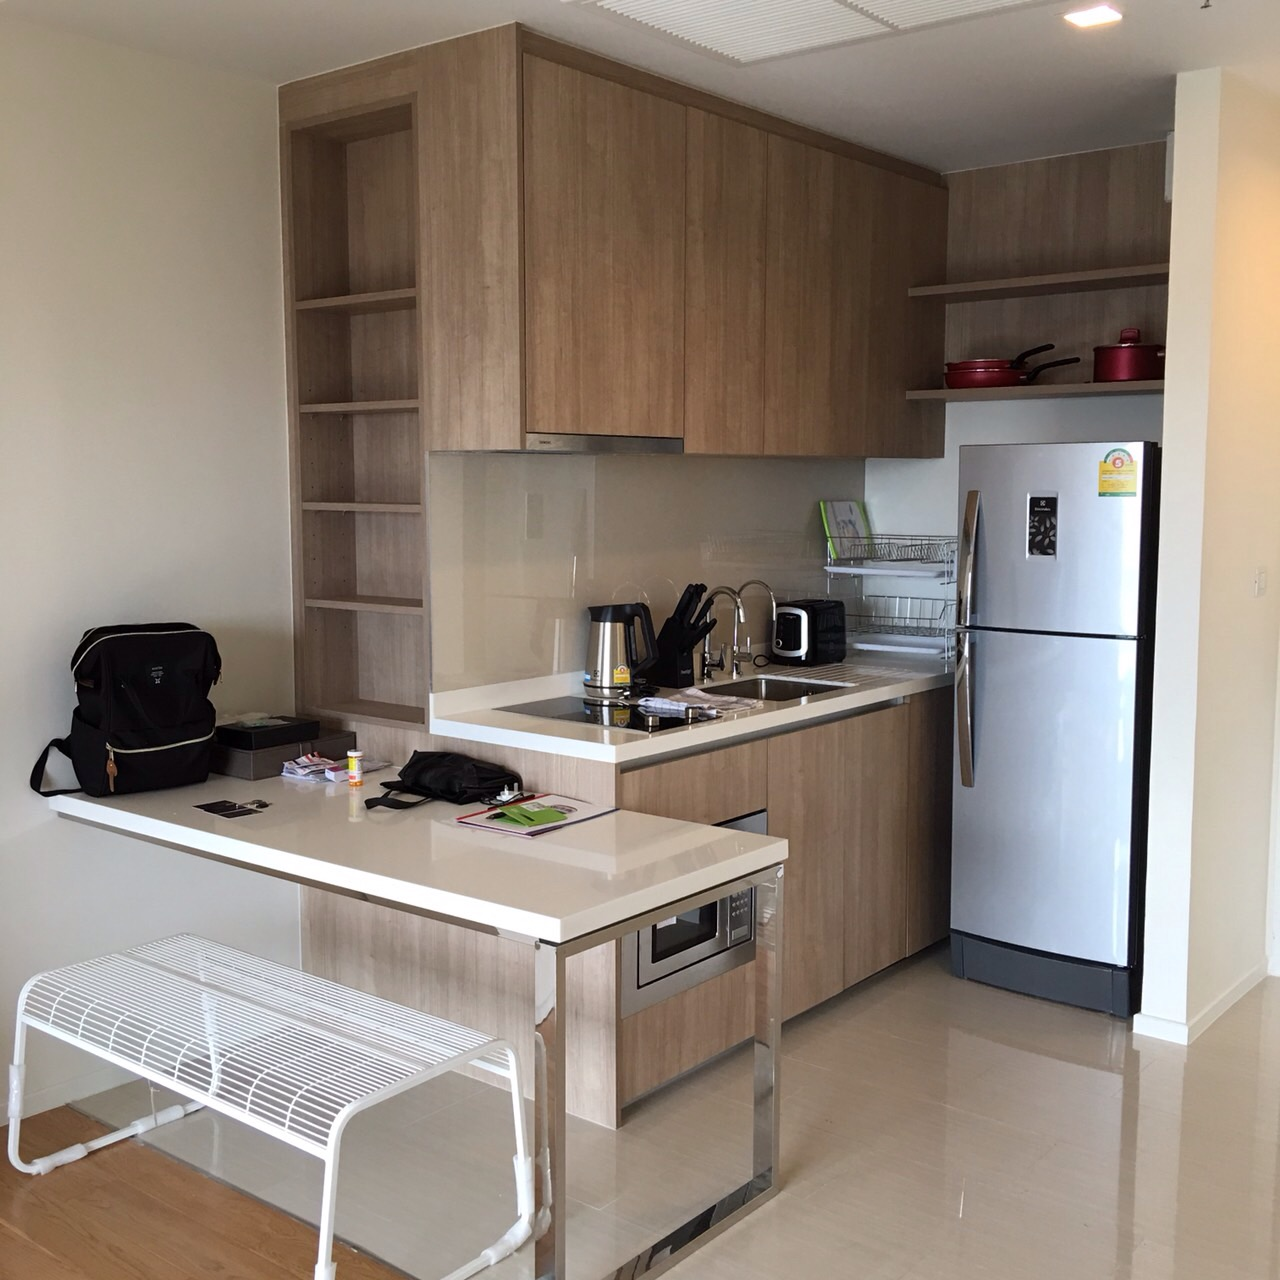 RE/MAX All Star Realty Agency's One Bedder (46sqm) at Circle2 Condo Rent very cheap 2